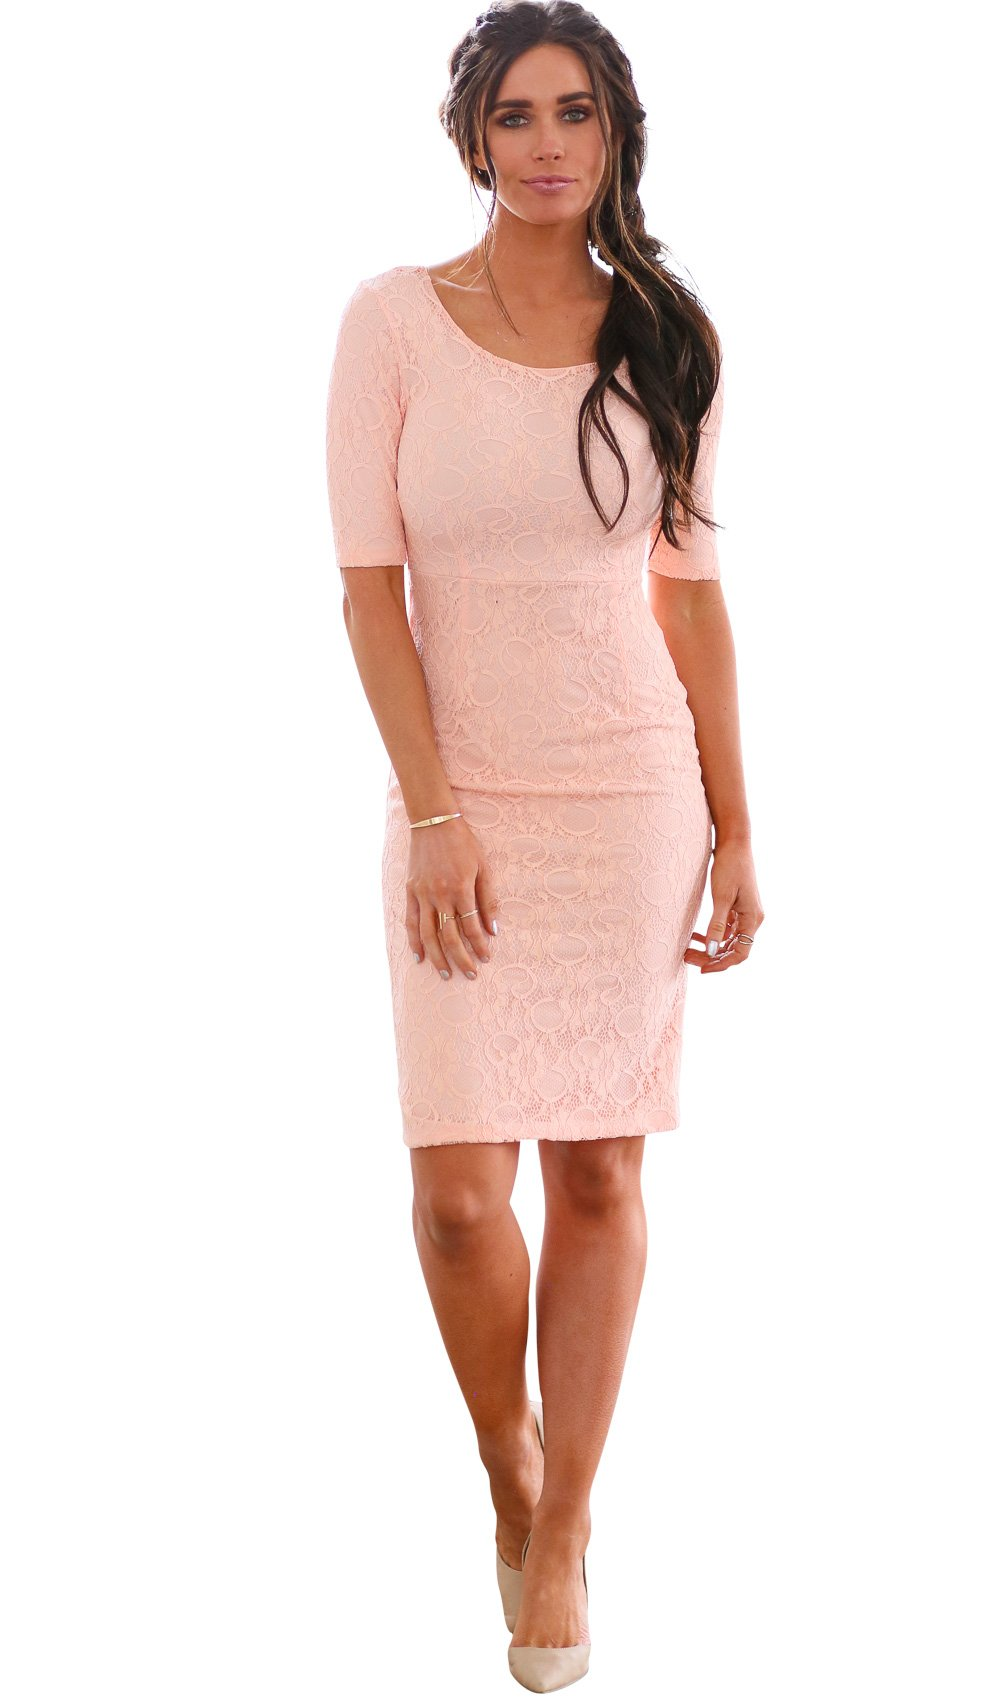 ee5ea7cfbf7 Mikarose June Modest Pencil Dress In Peachy Pink Lace - L